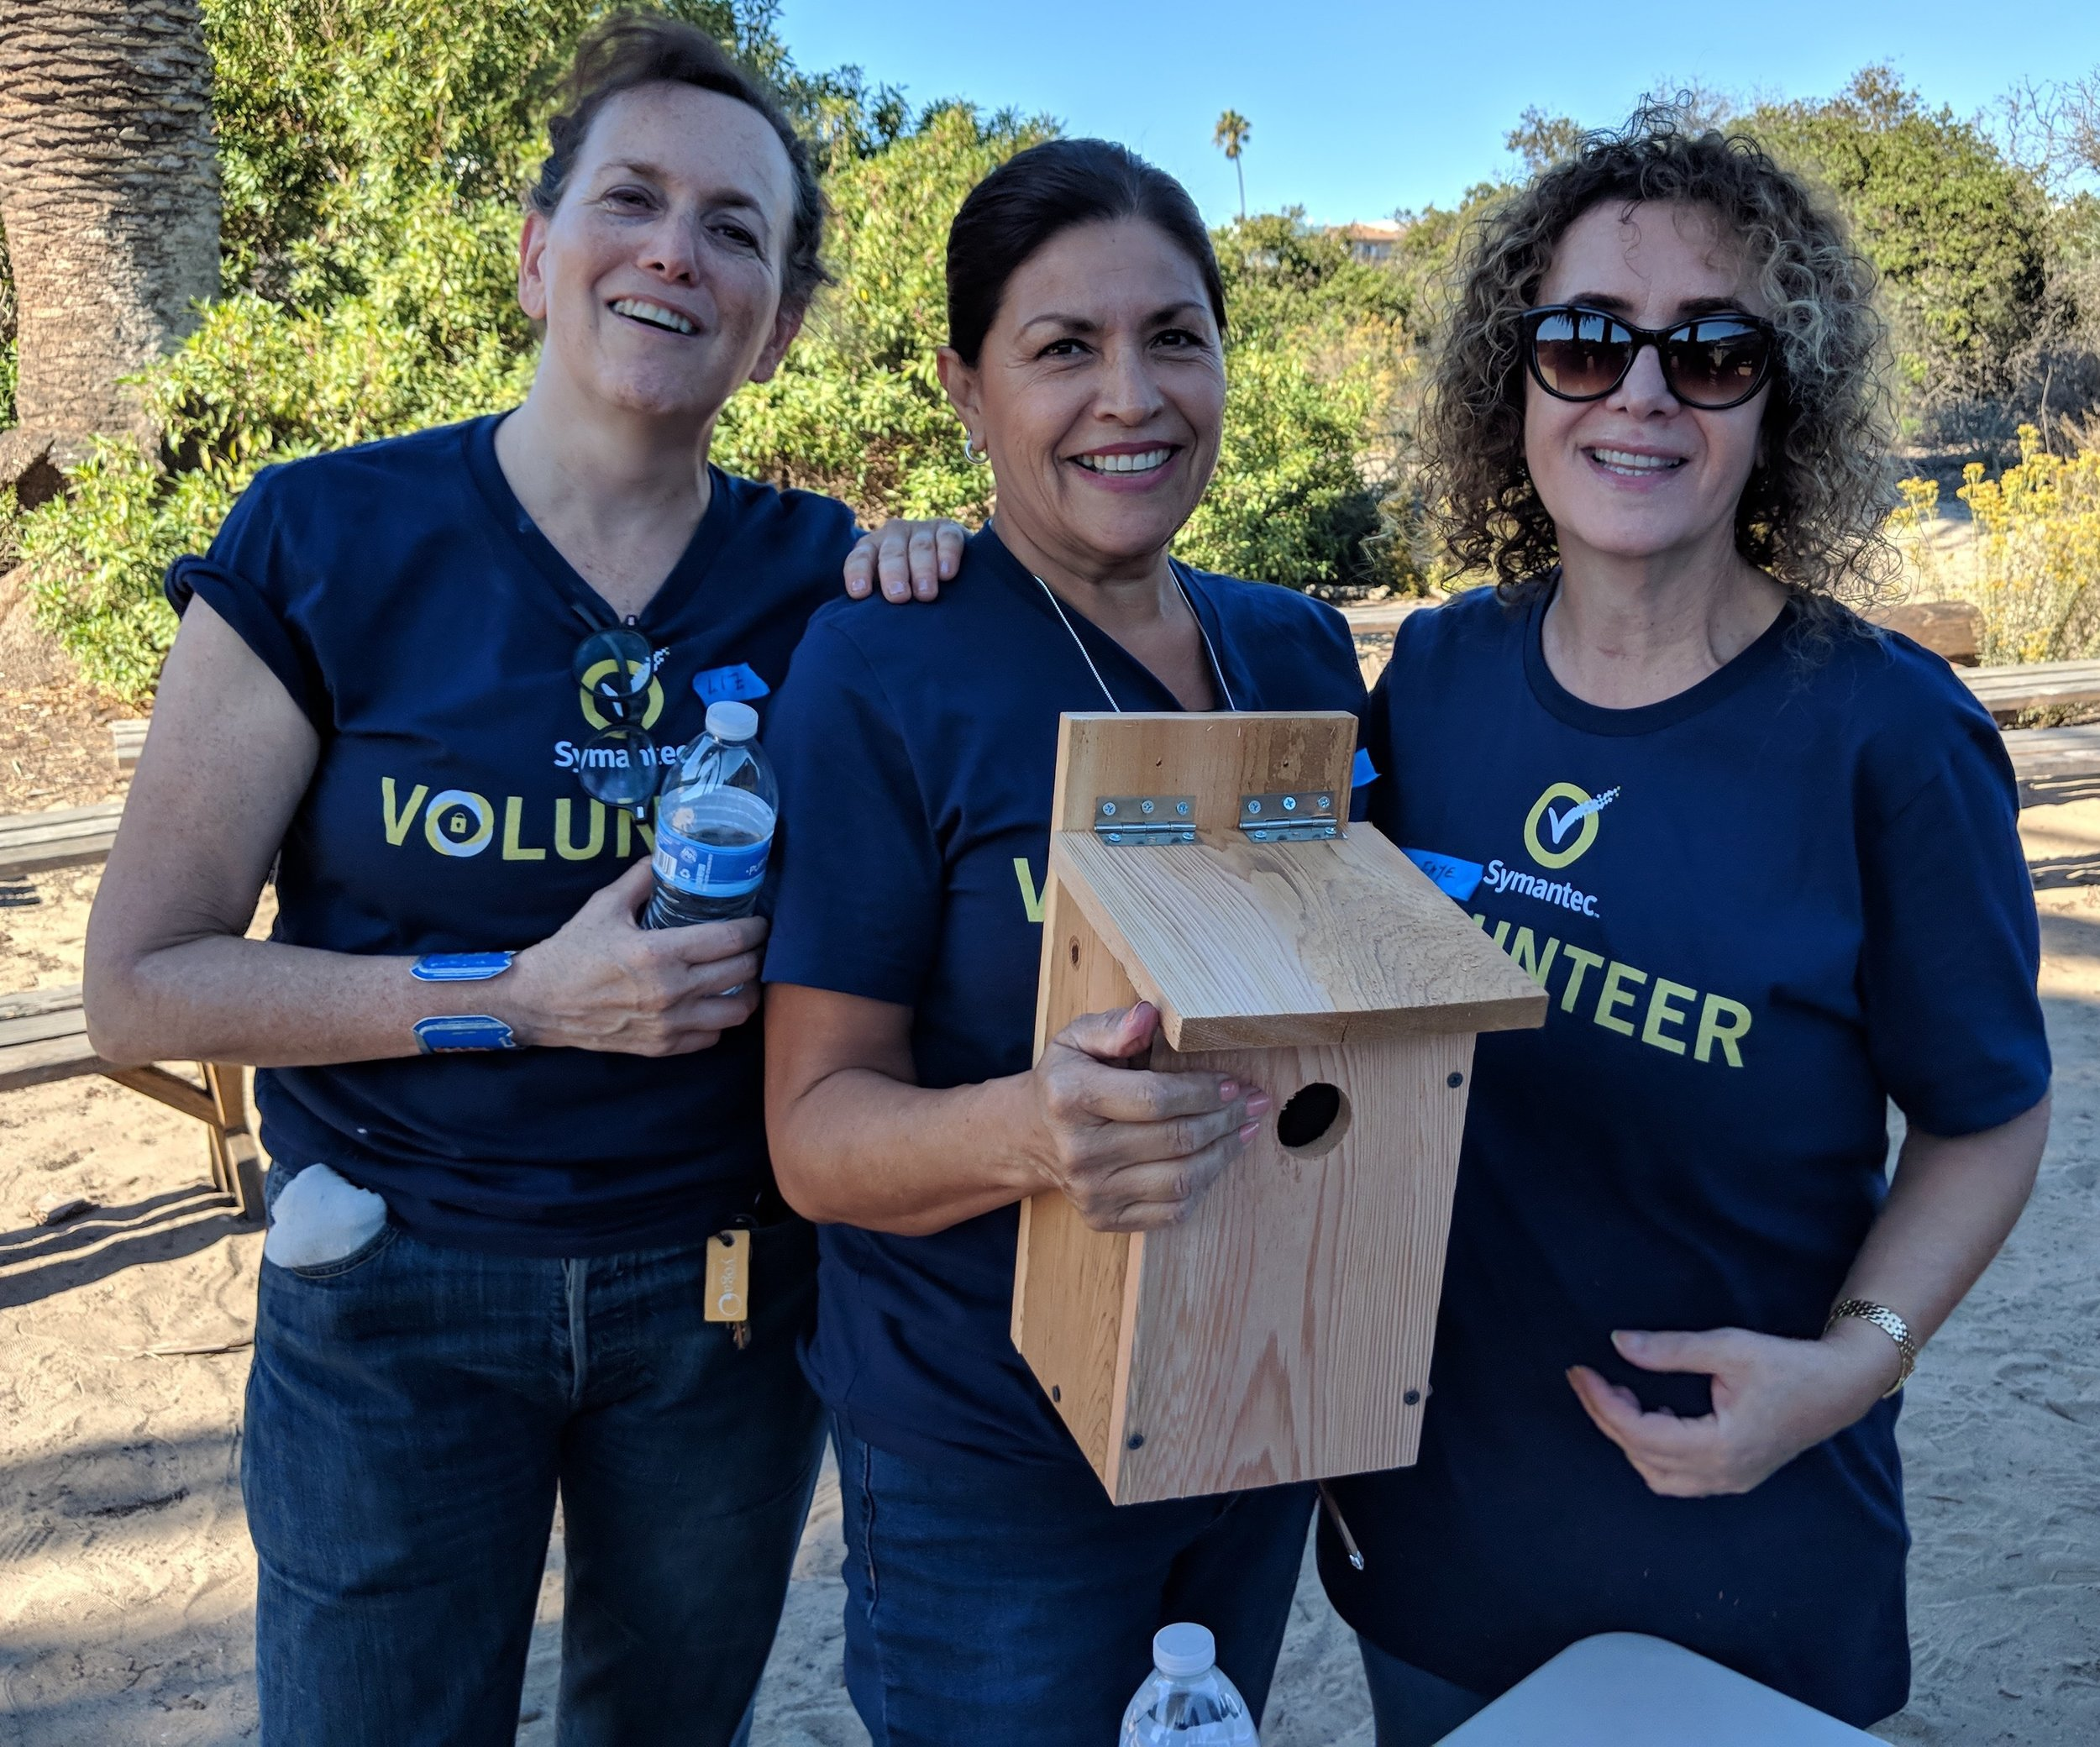 Symantec employees hold nesting boxes they created as part of a creek cleanup they participated in near Los Angeles in 2018.